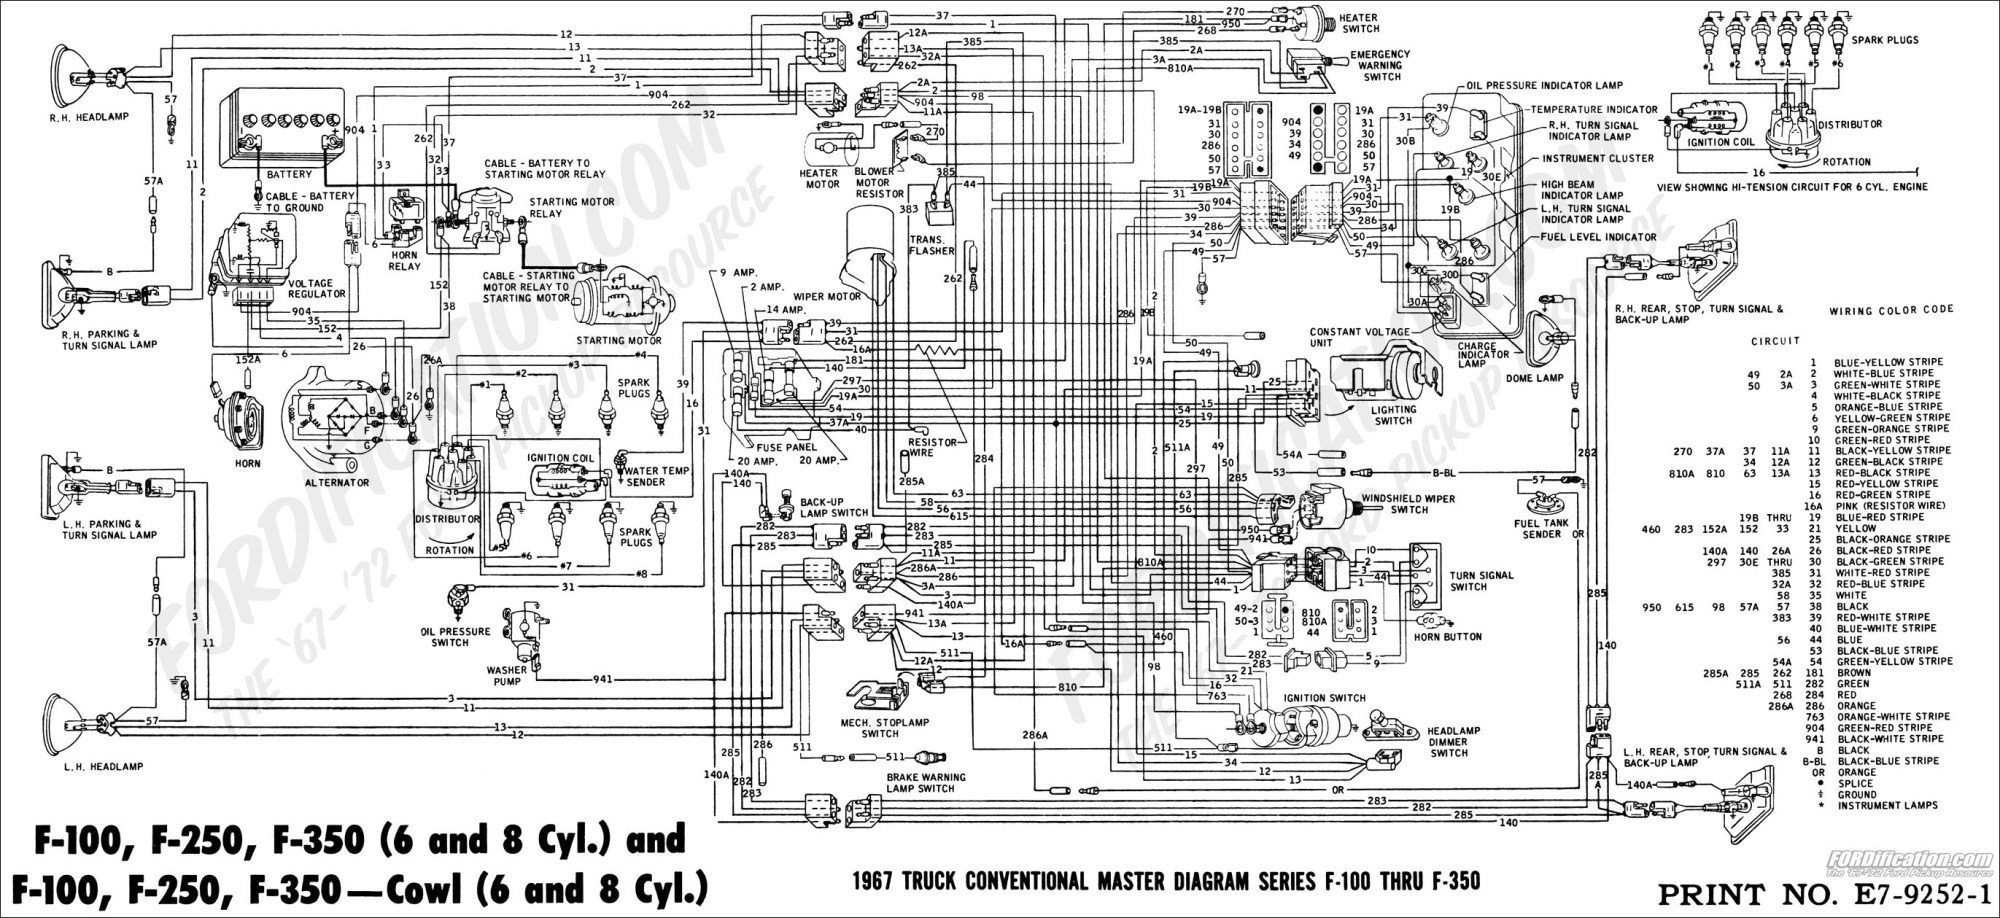 hight resolution of 1988 ford f150 wiring diagram wiring diagram expert 1989 f150 horn wiring diagram 1989 f 150